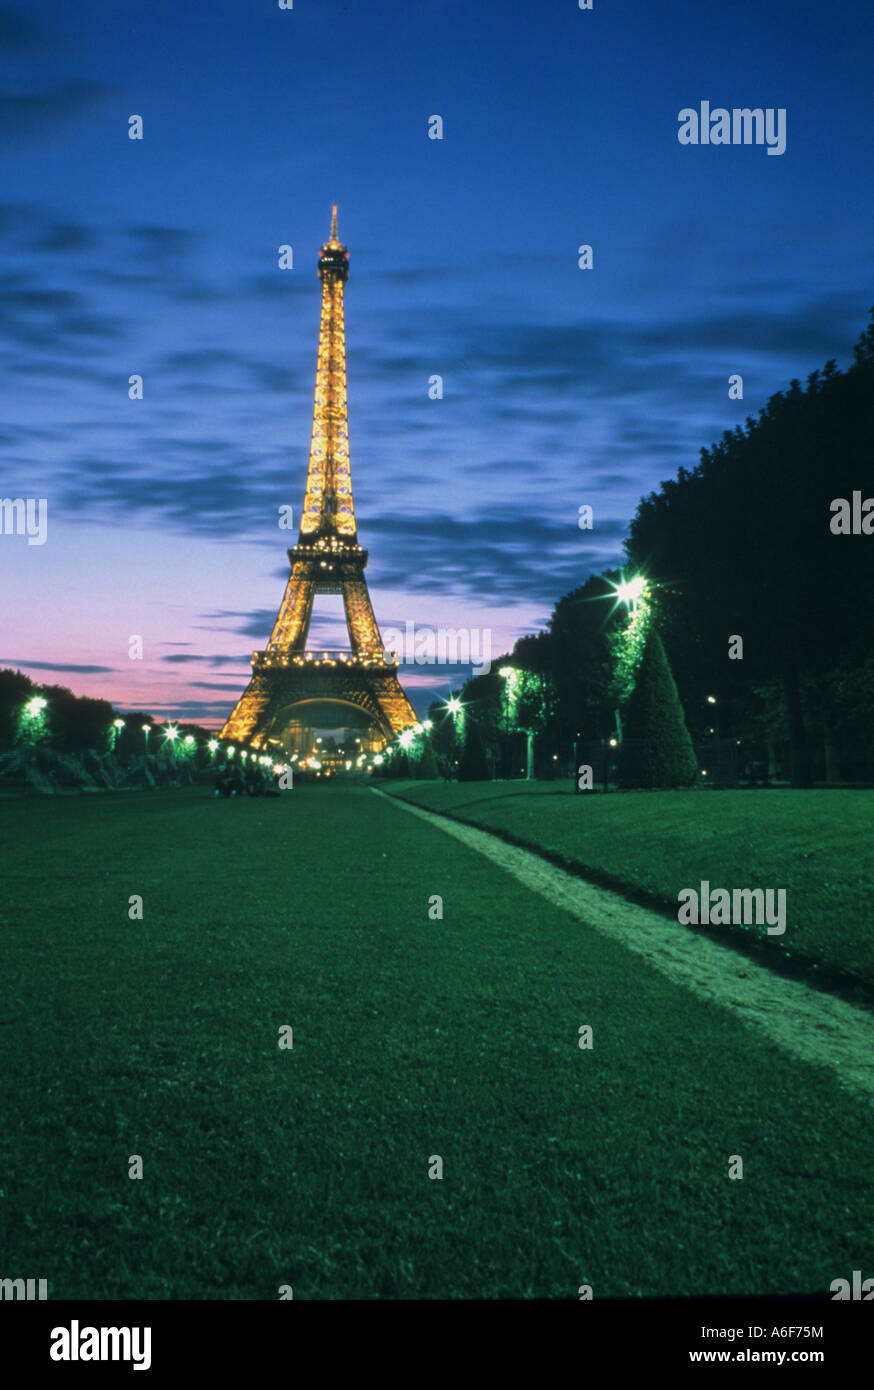 Evening view of the Eiffel Tower in Paris France - Stock Image